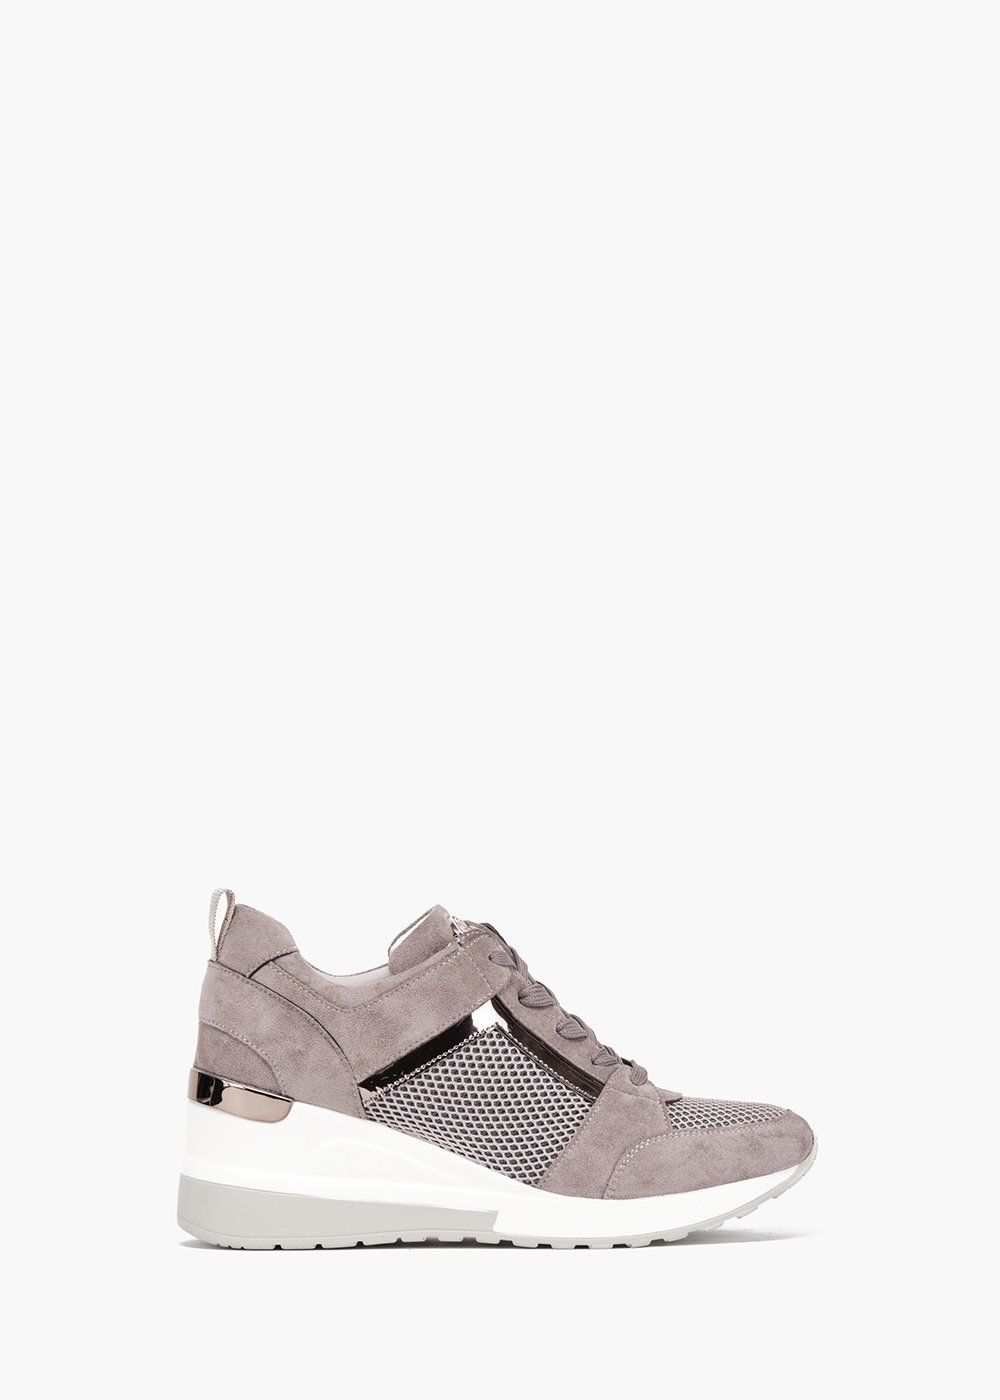 Gym shoes Steal in eco suede with net detail